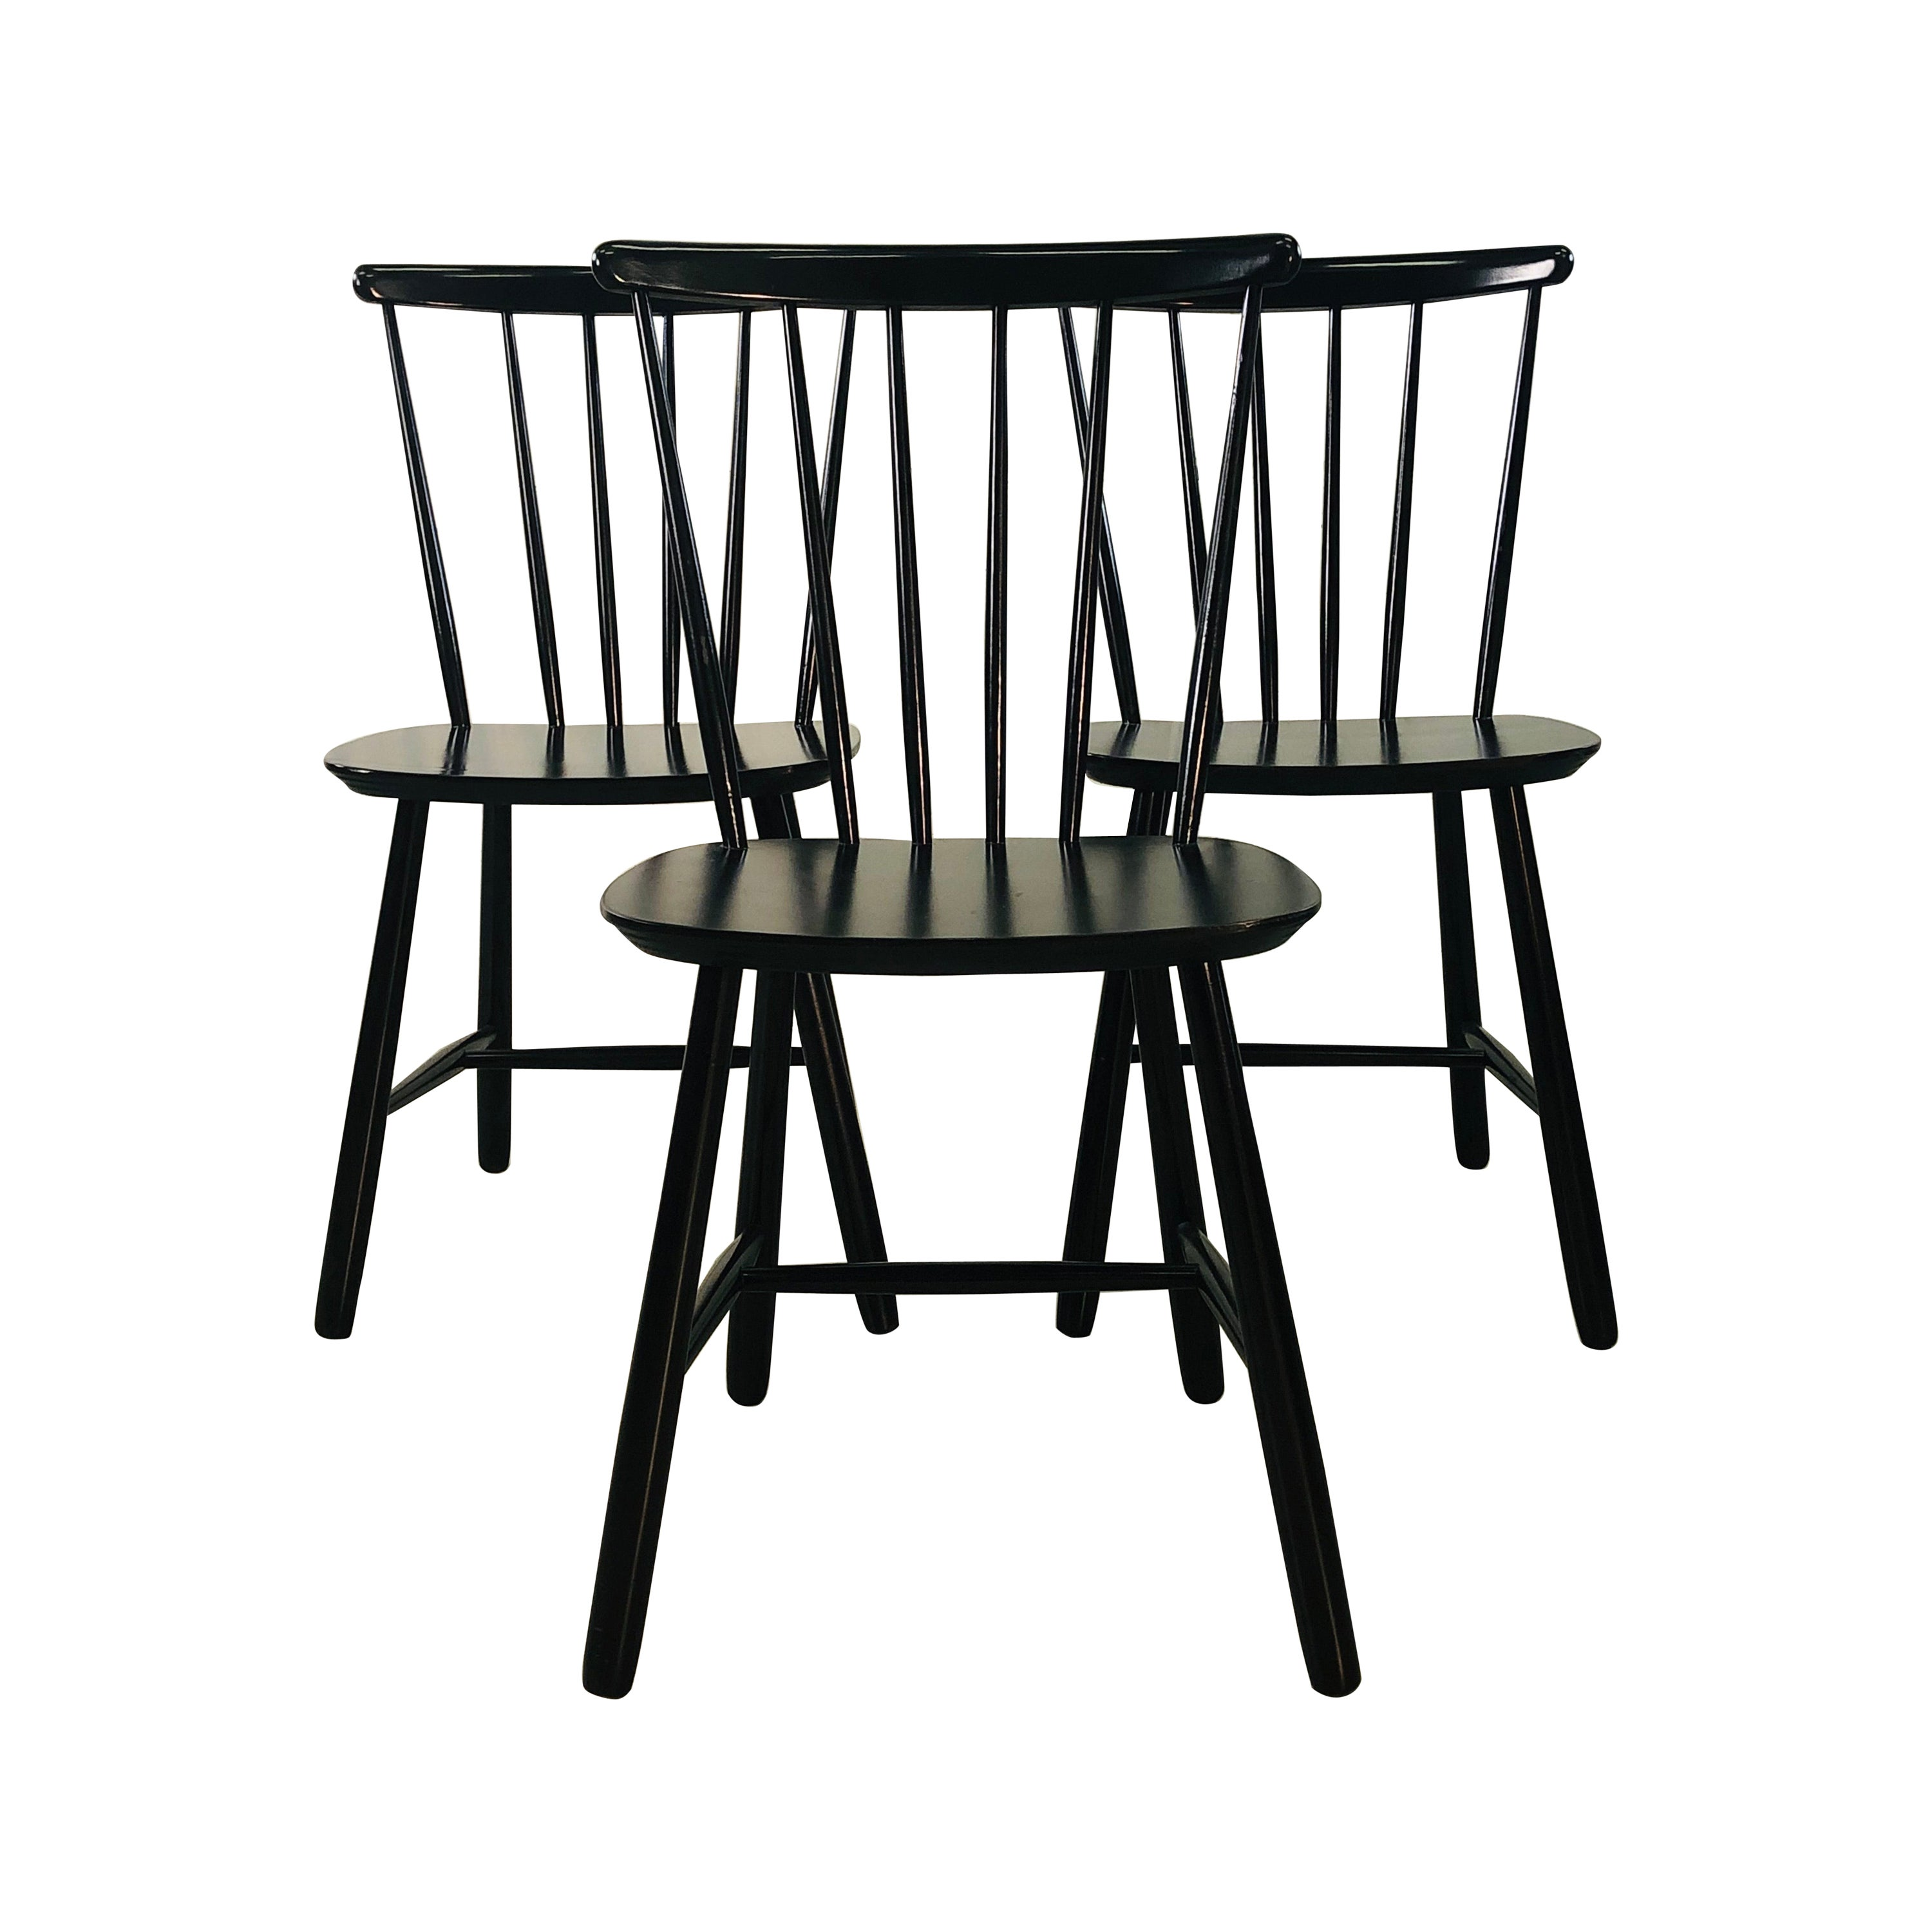 1960s Farstrup Danish Black Dining Chairs, Set of 3